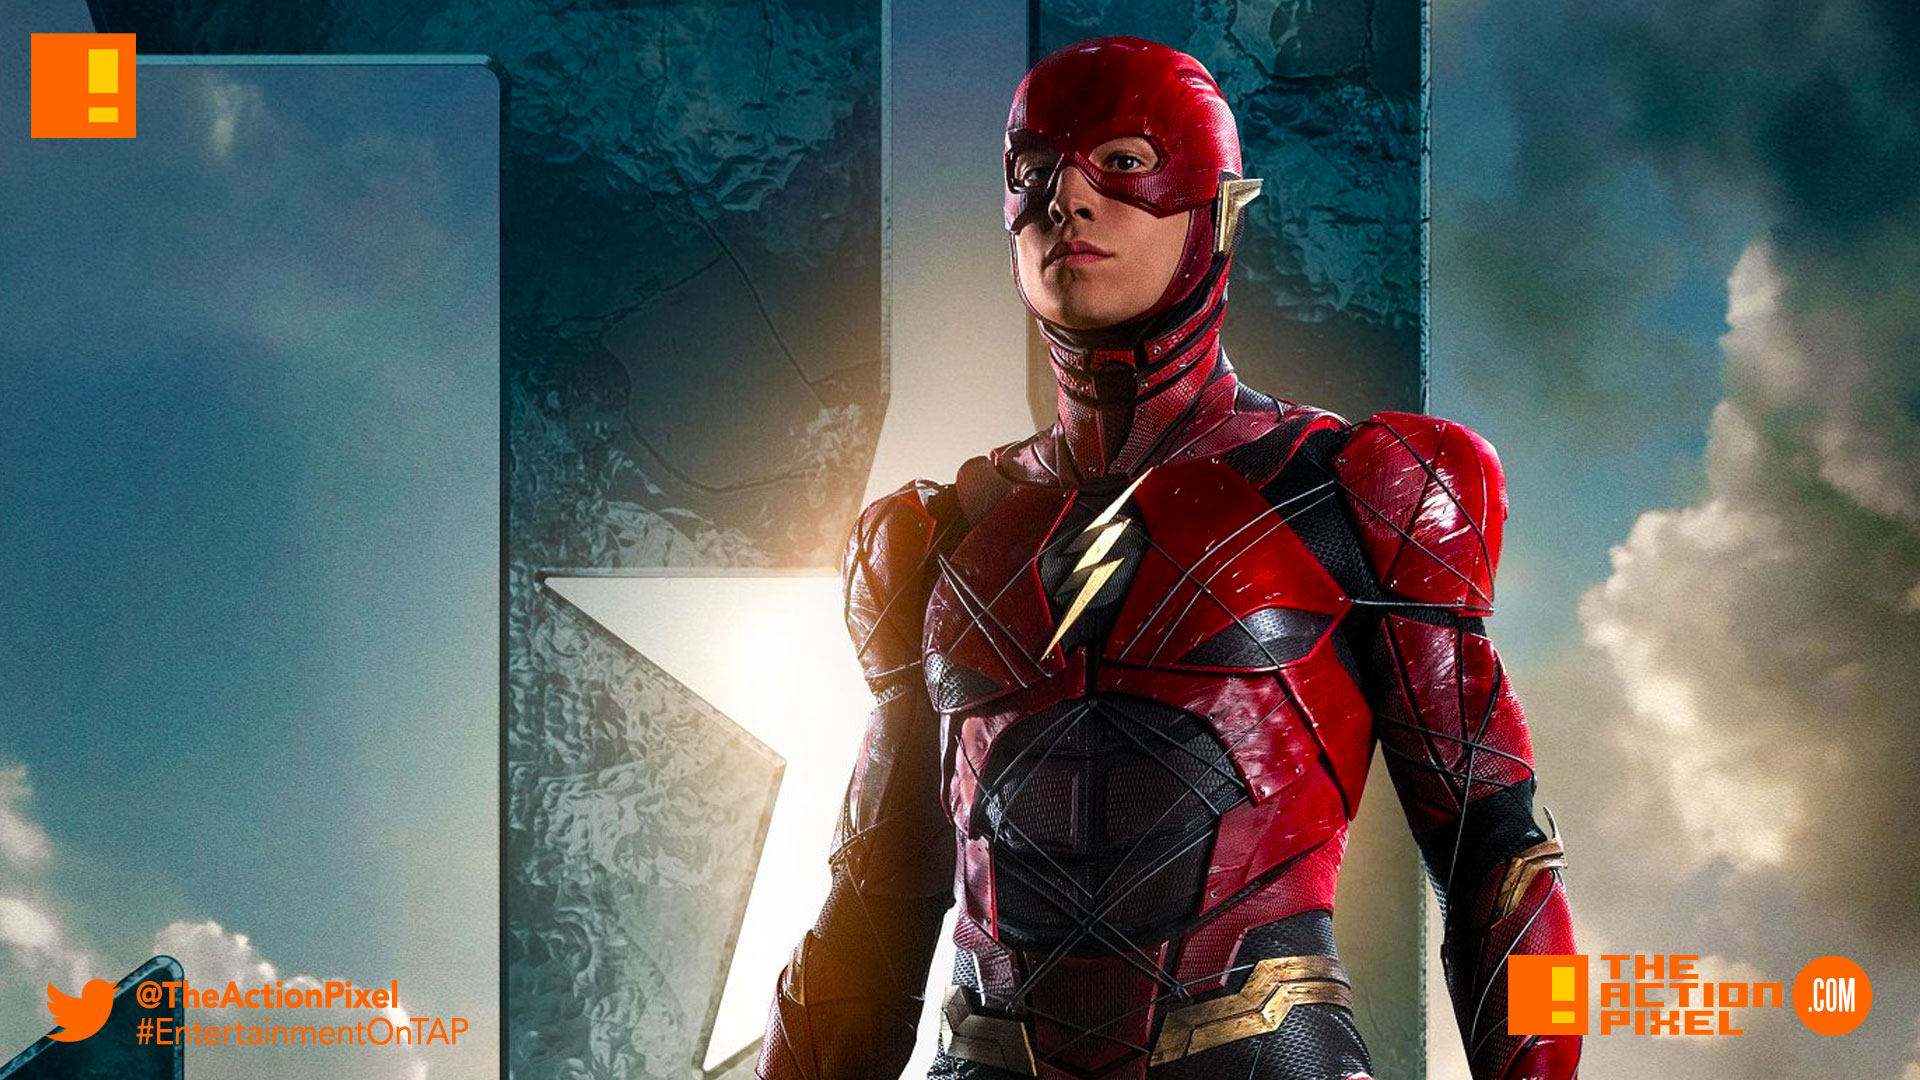 flash, justice league, dc comics, dc entertainment, jl, justice league movie, wb pictures, warner bros. entertainment, the action pixel, entertainment on tap, poster,ezra miller, barry allen, promo,teaser, trailer , character poster,